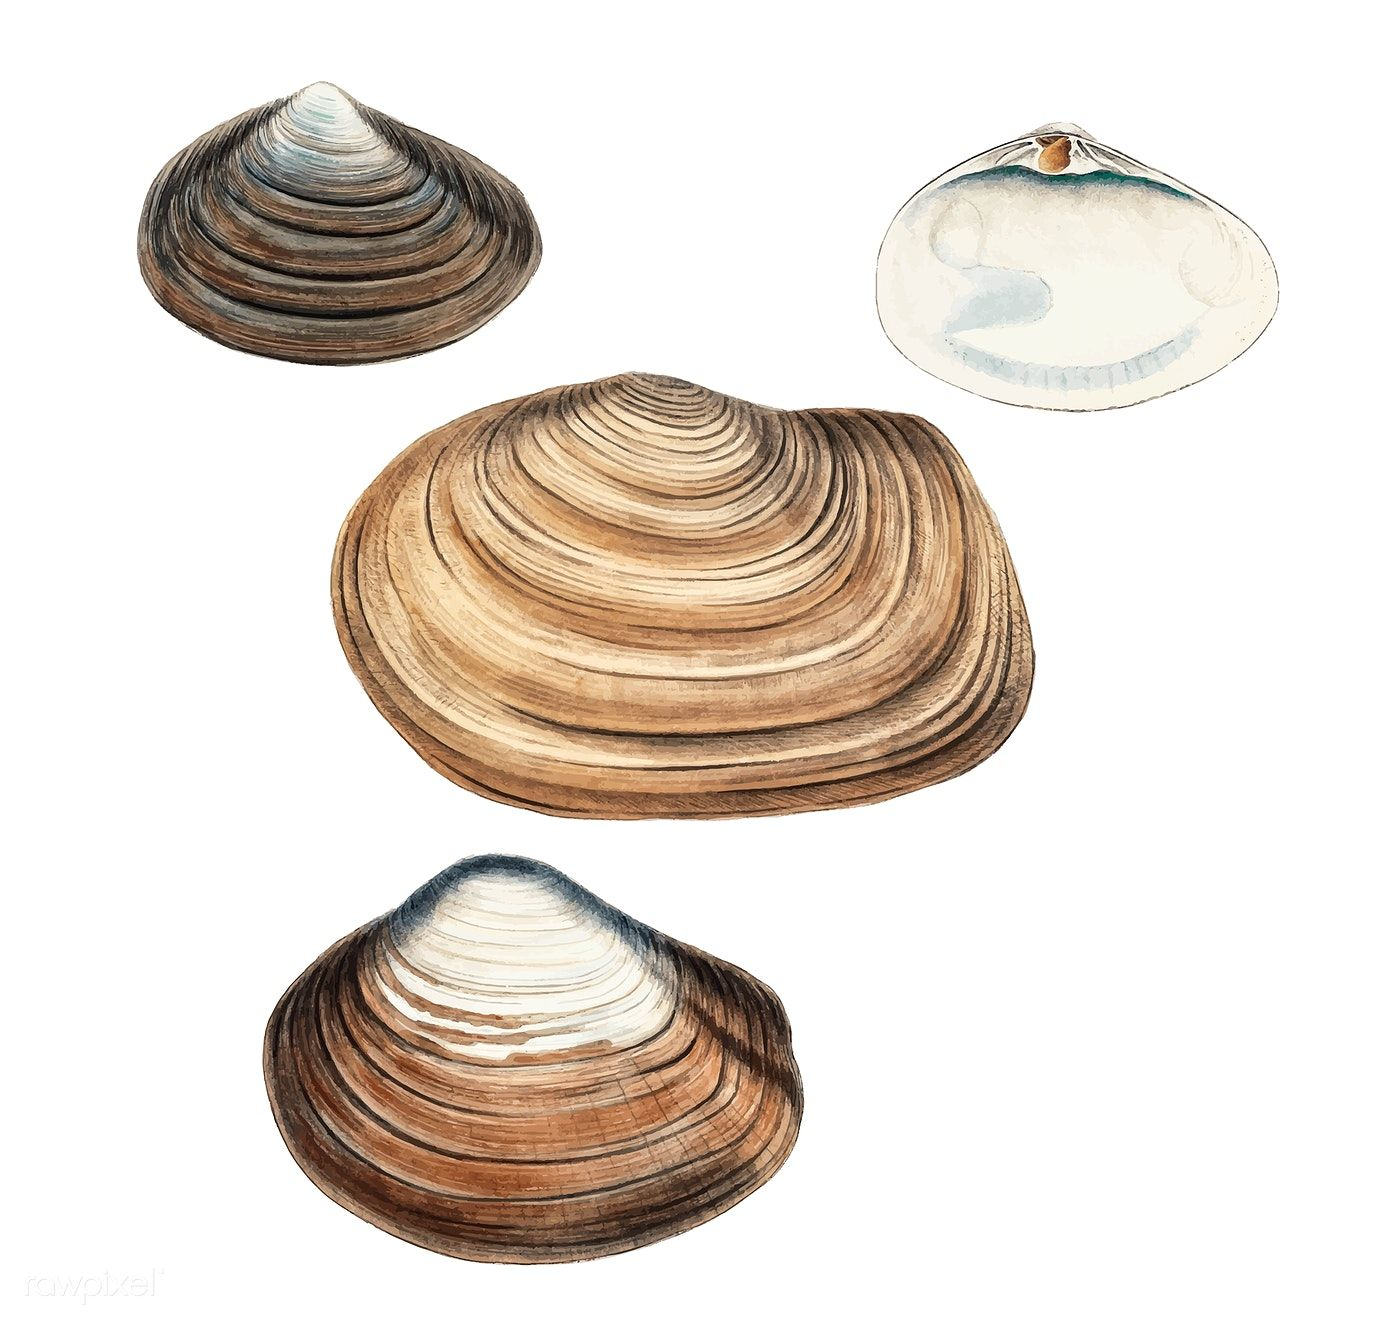 Clam Shell Varieties Set Illustration Free Image By Rawpixel Com Clams Crab Illustration Clam Shell